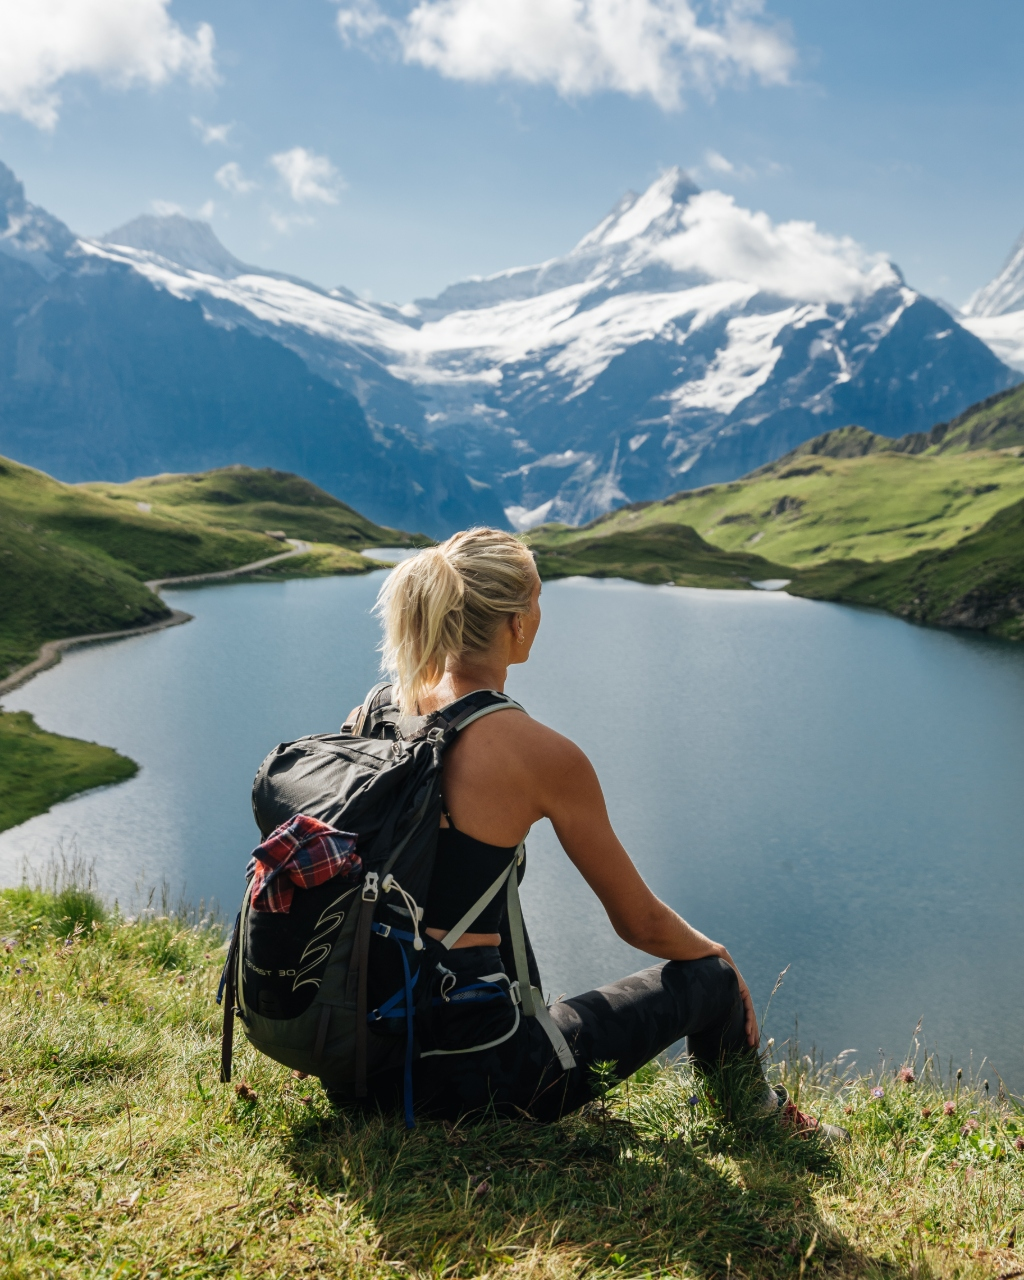 THE BEST HIKES IN GRINDELWALD, SWITZERLAND: AN ACTIVE TRAVEL GUIDE